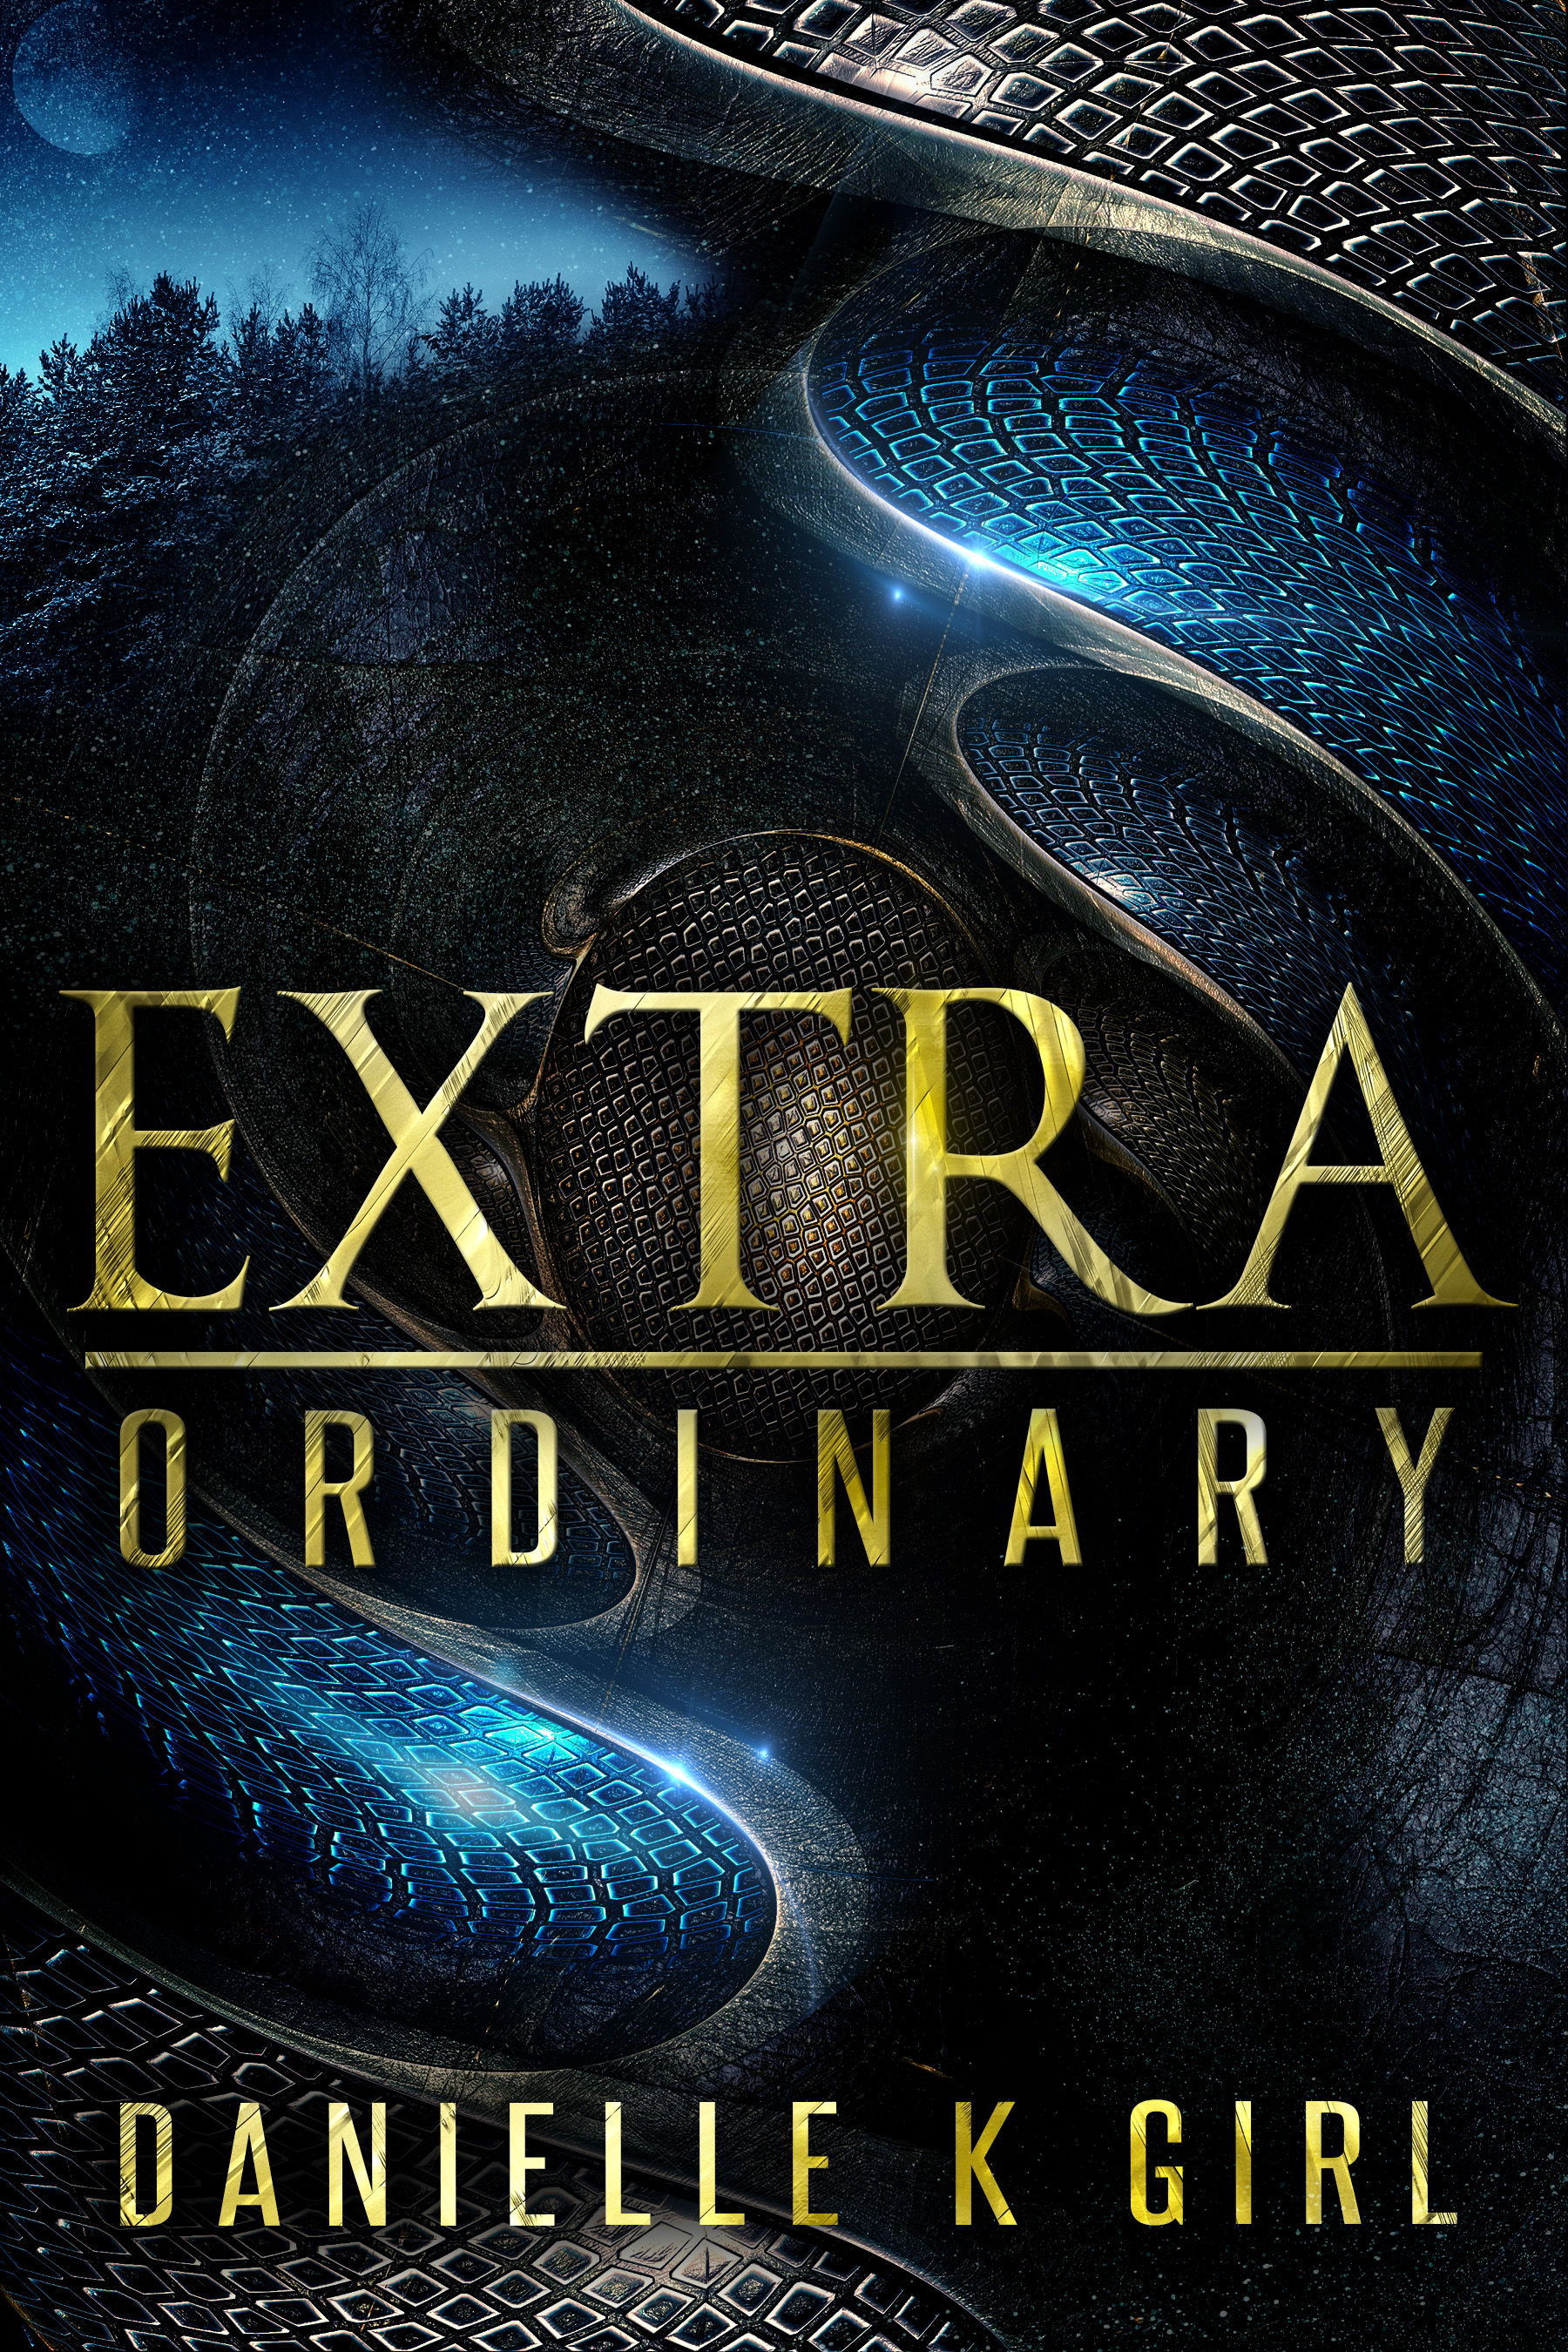 Extra|Ordinary by Danielle K Girl